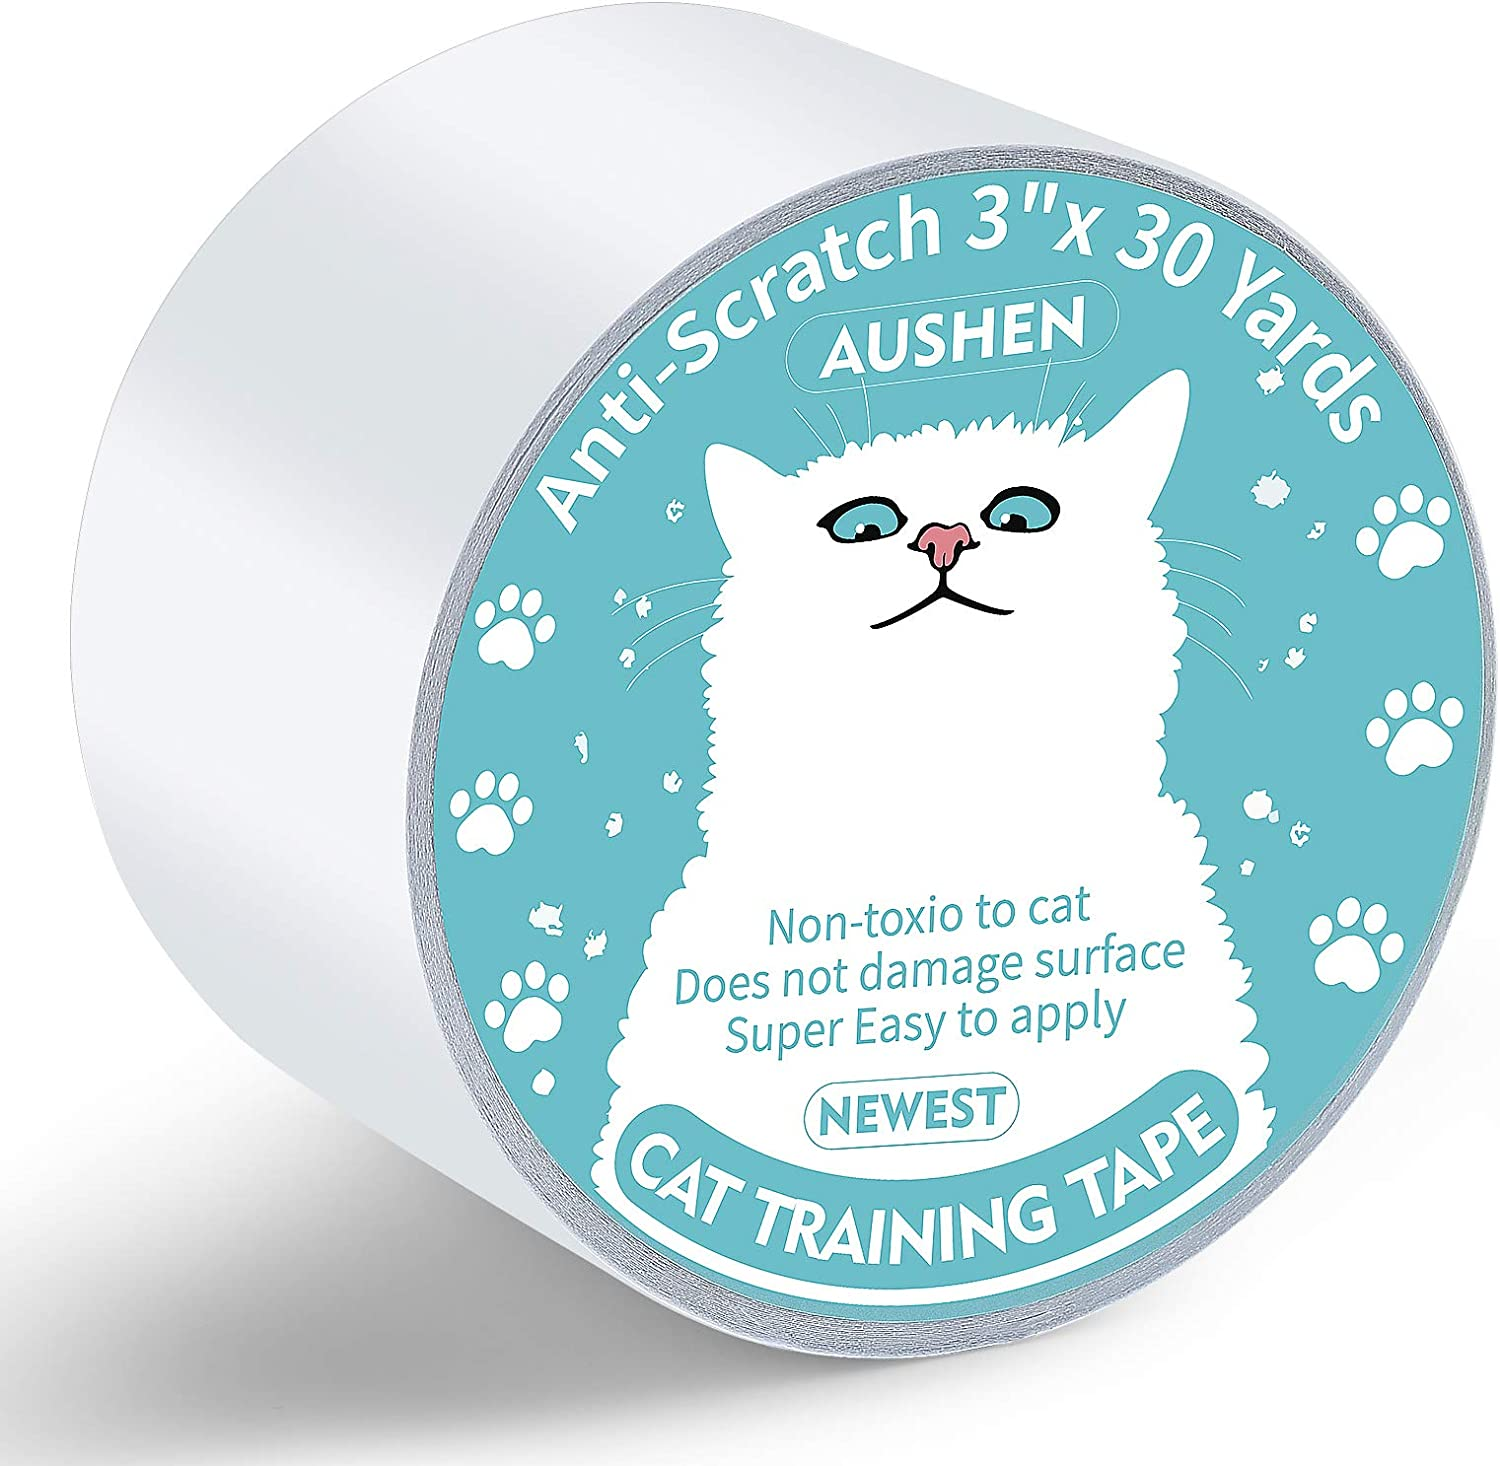 AUSHEN Anti Cat Scratch Tape,3 inches x 30 Yards Cat Training Tape,Cat Scratch Deterrent Sticky Paws Tape Furniture Protector Transparent Clear Double Sided Guards for Carpet, Sofa, Couch, Door